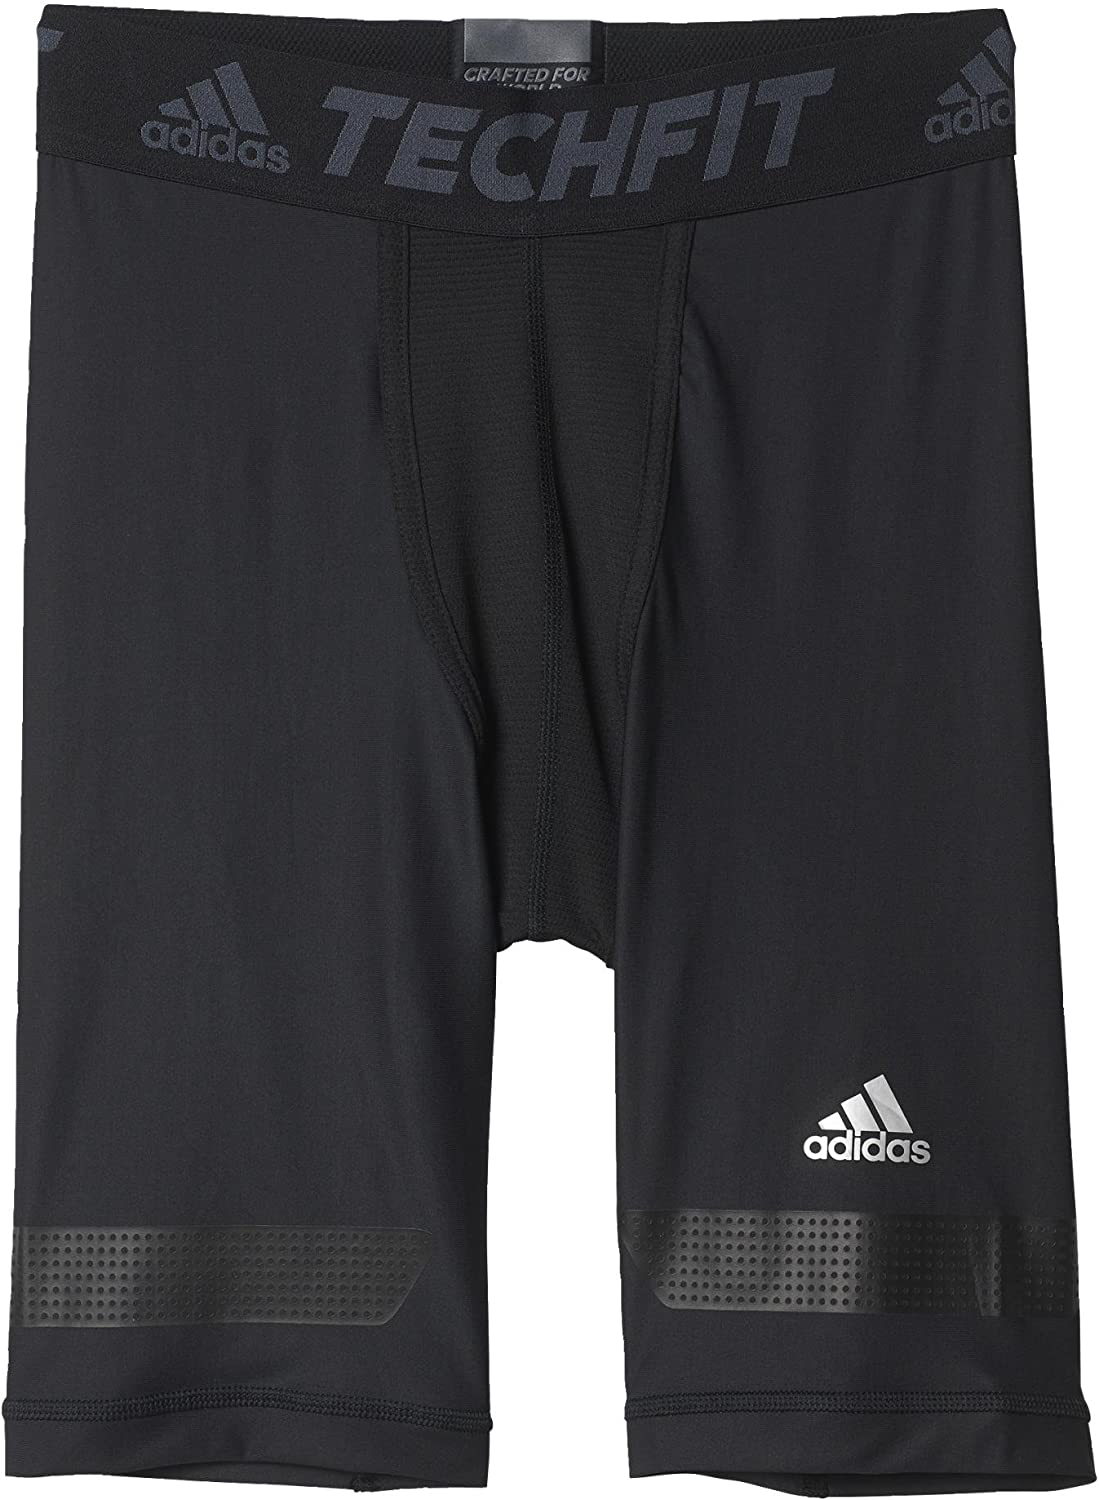 ADIDAS Herren Funktionsunterhose TF Chill Short Tight online